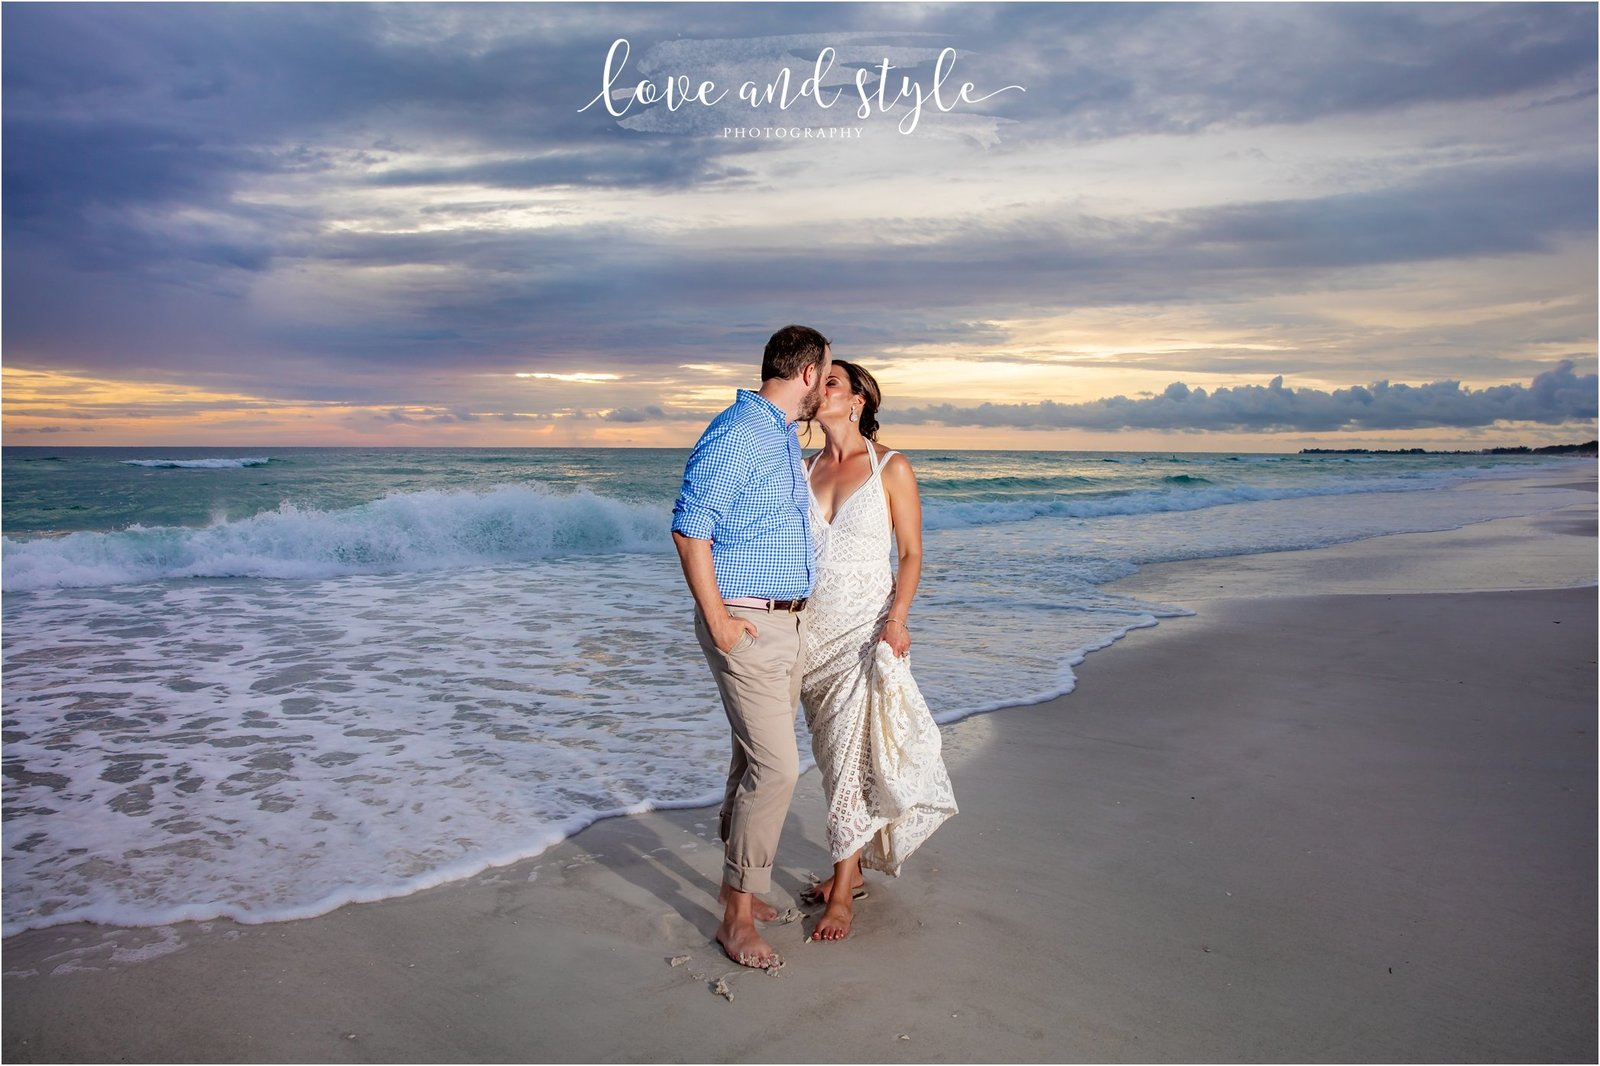 Bride and Groom on Bradenton Beach at Sunset in front of The Beach House Restaurant